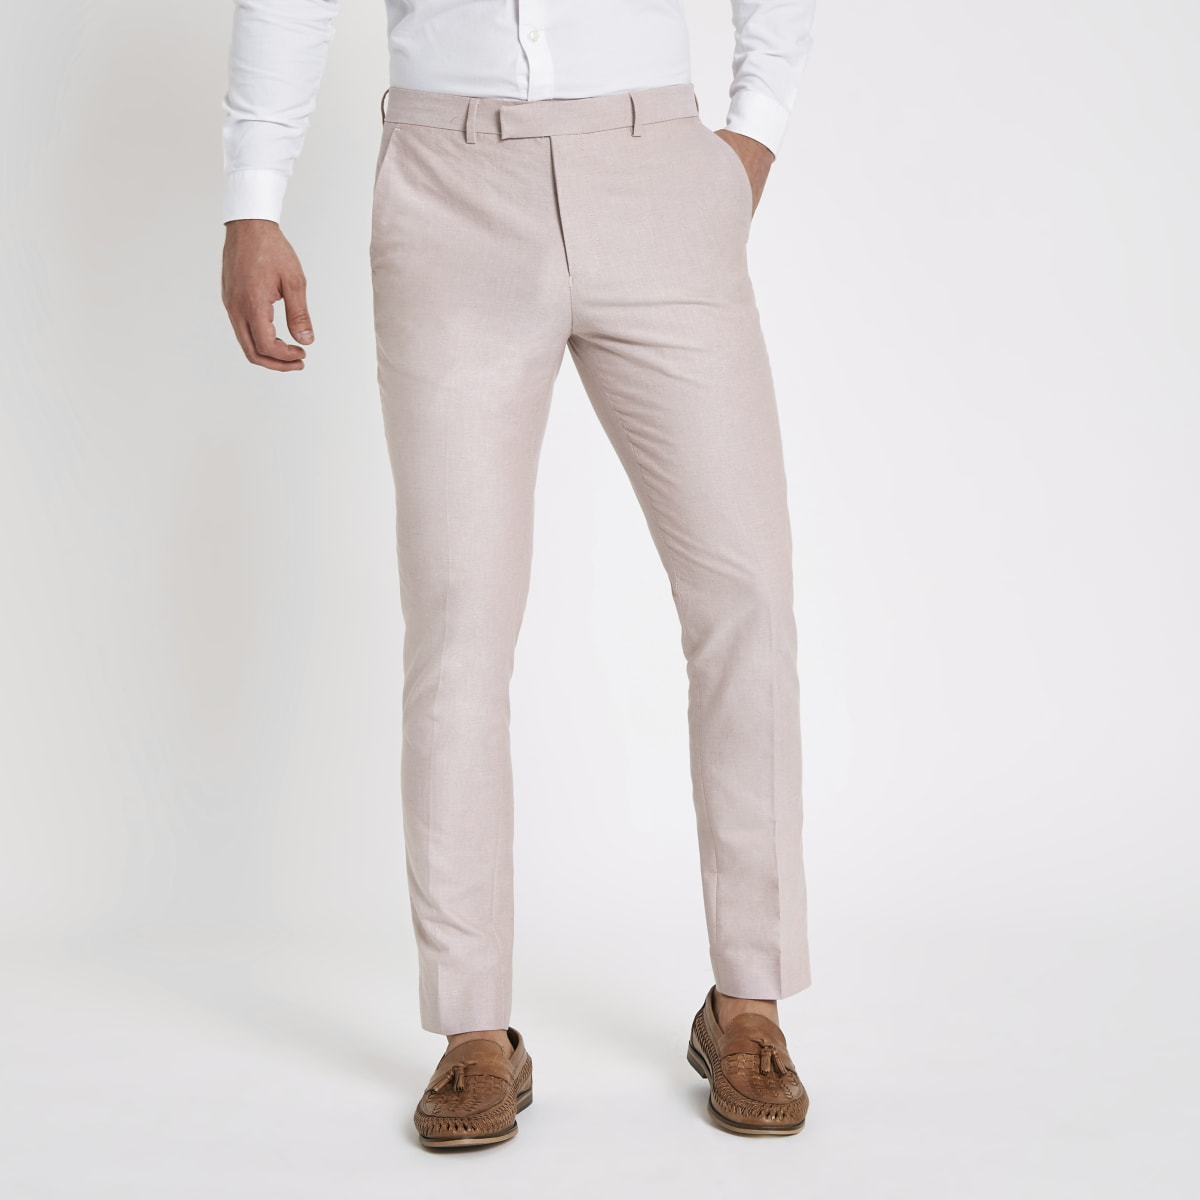 Pink skinny fit smart pants